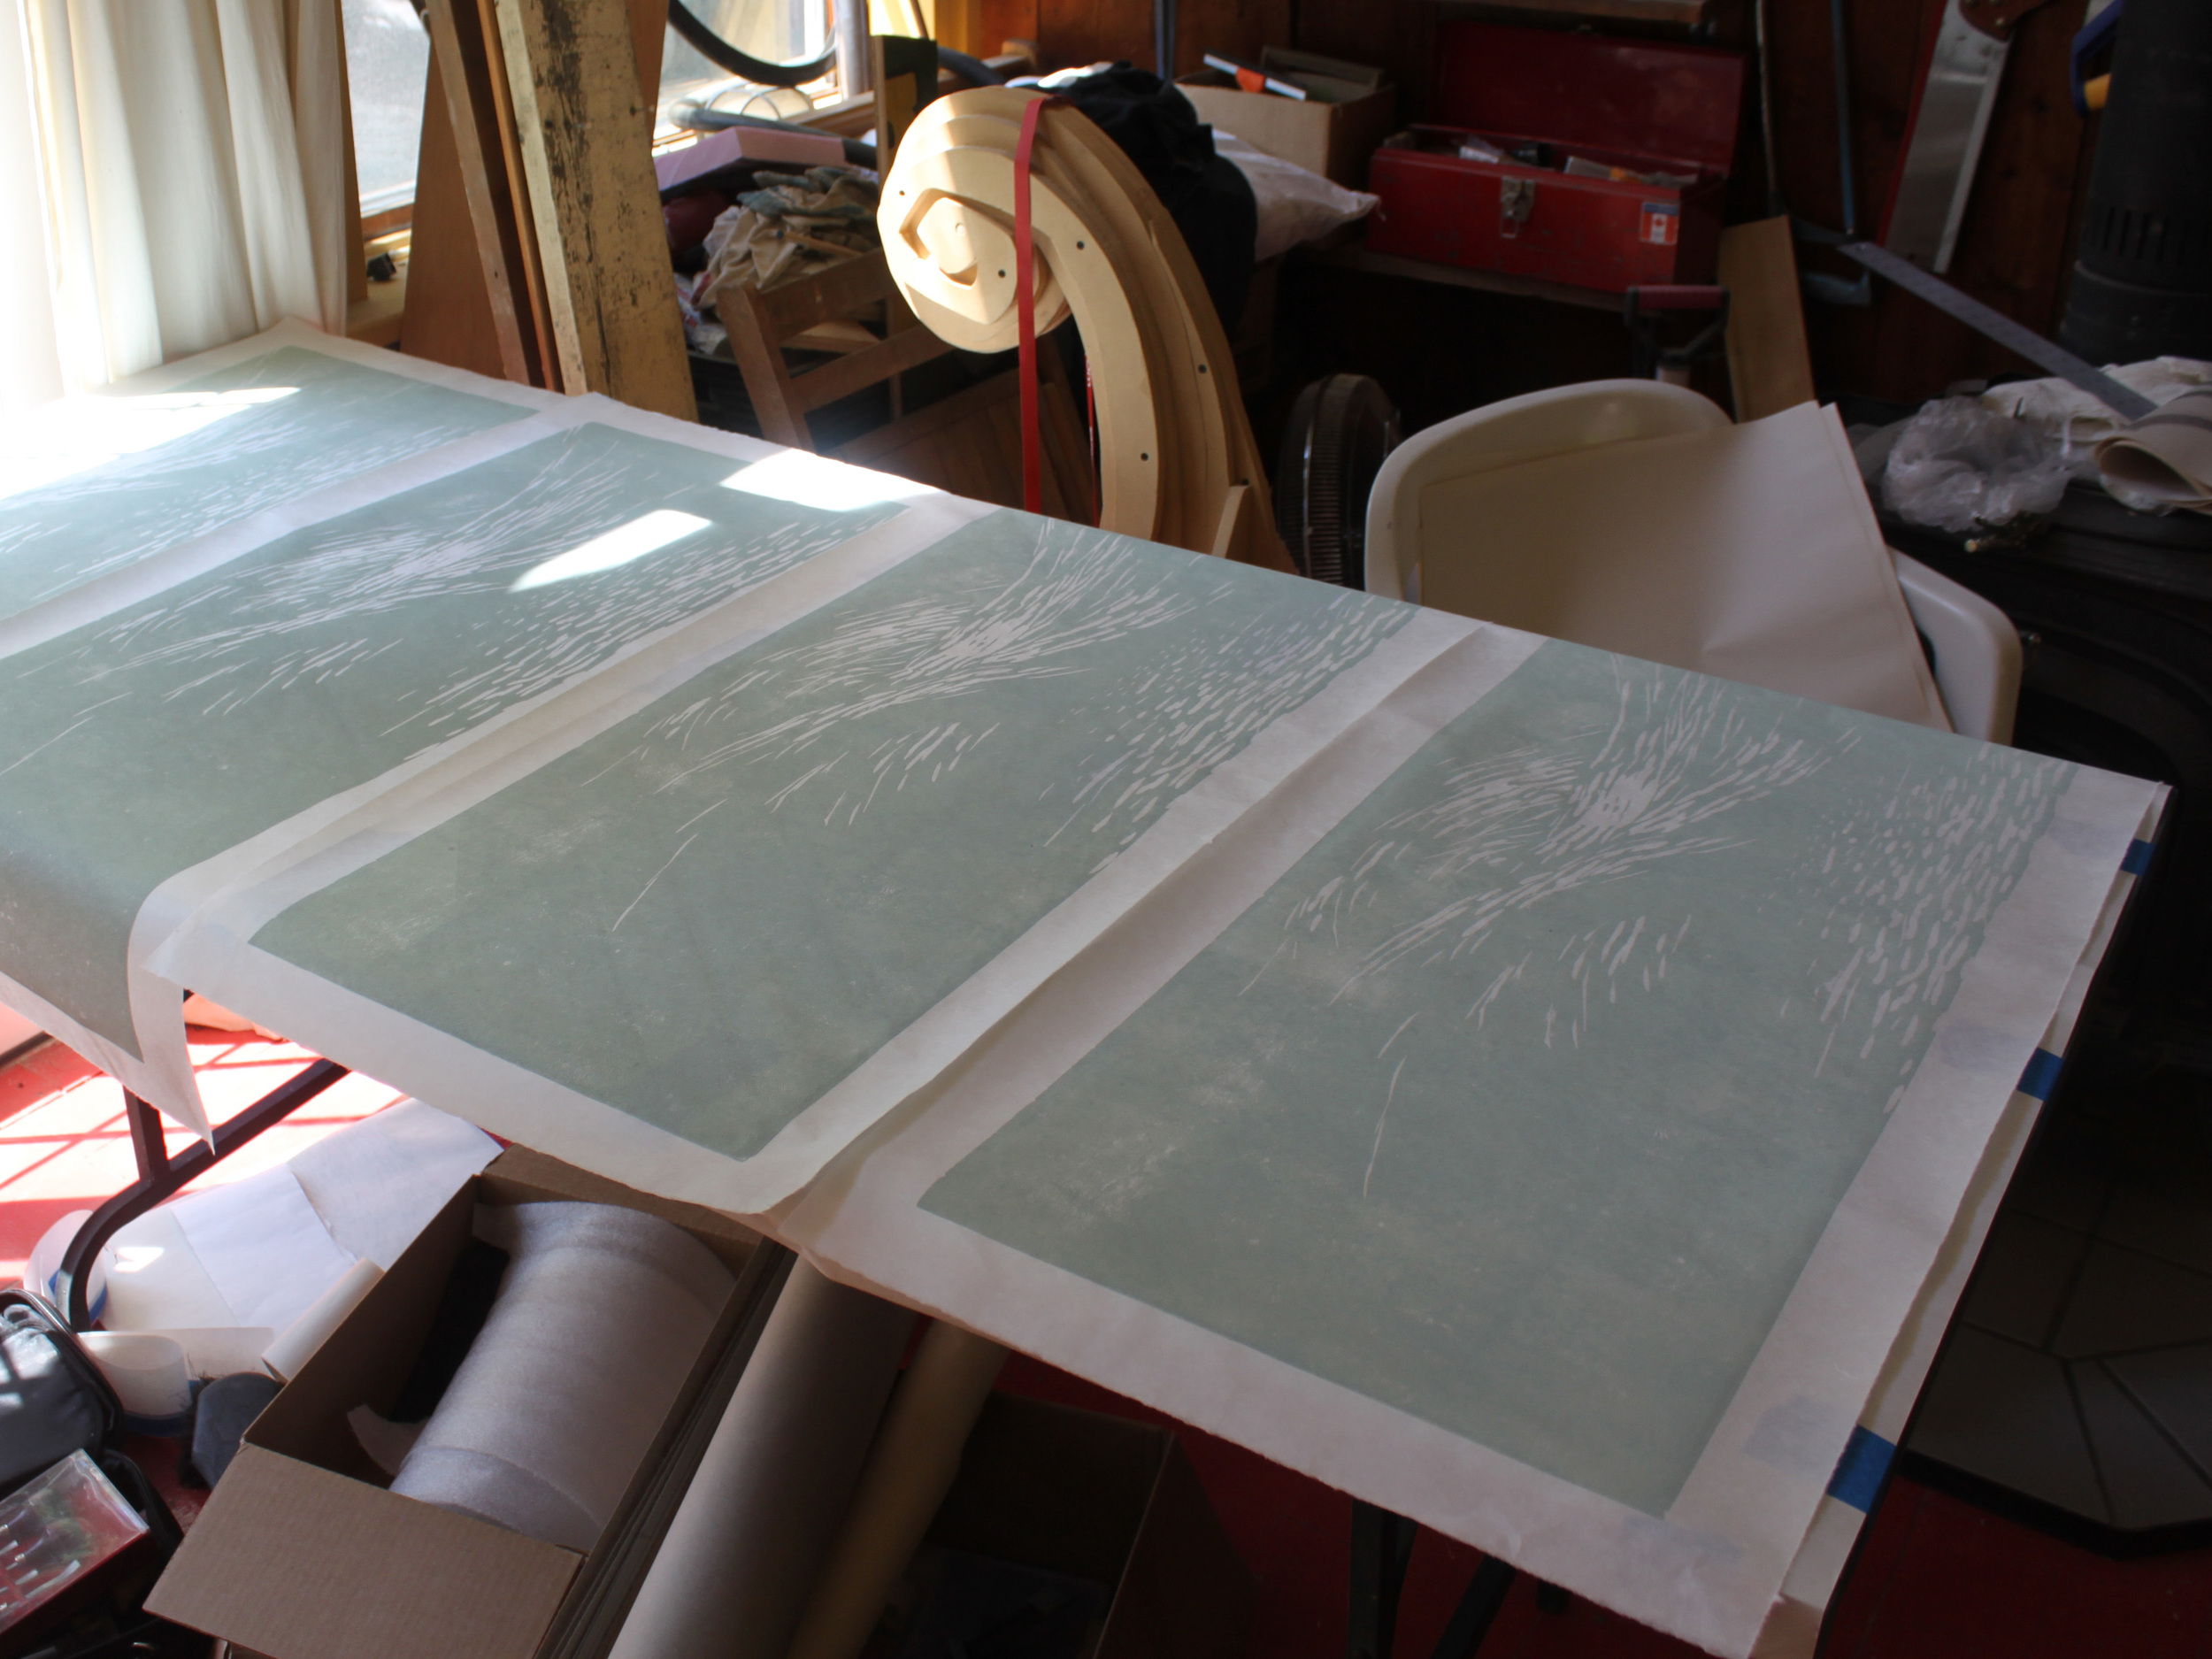 Printing the first color